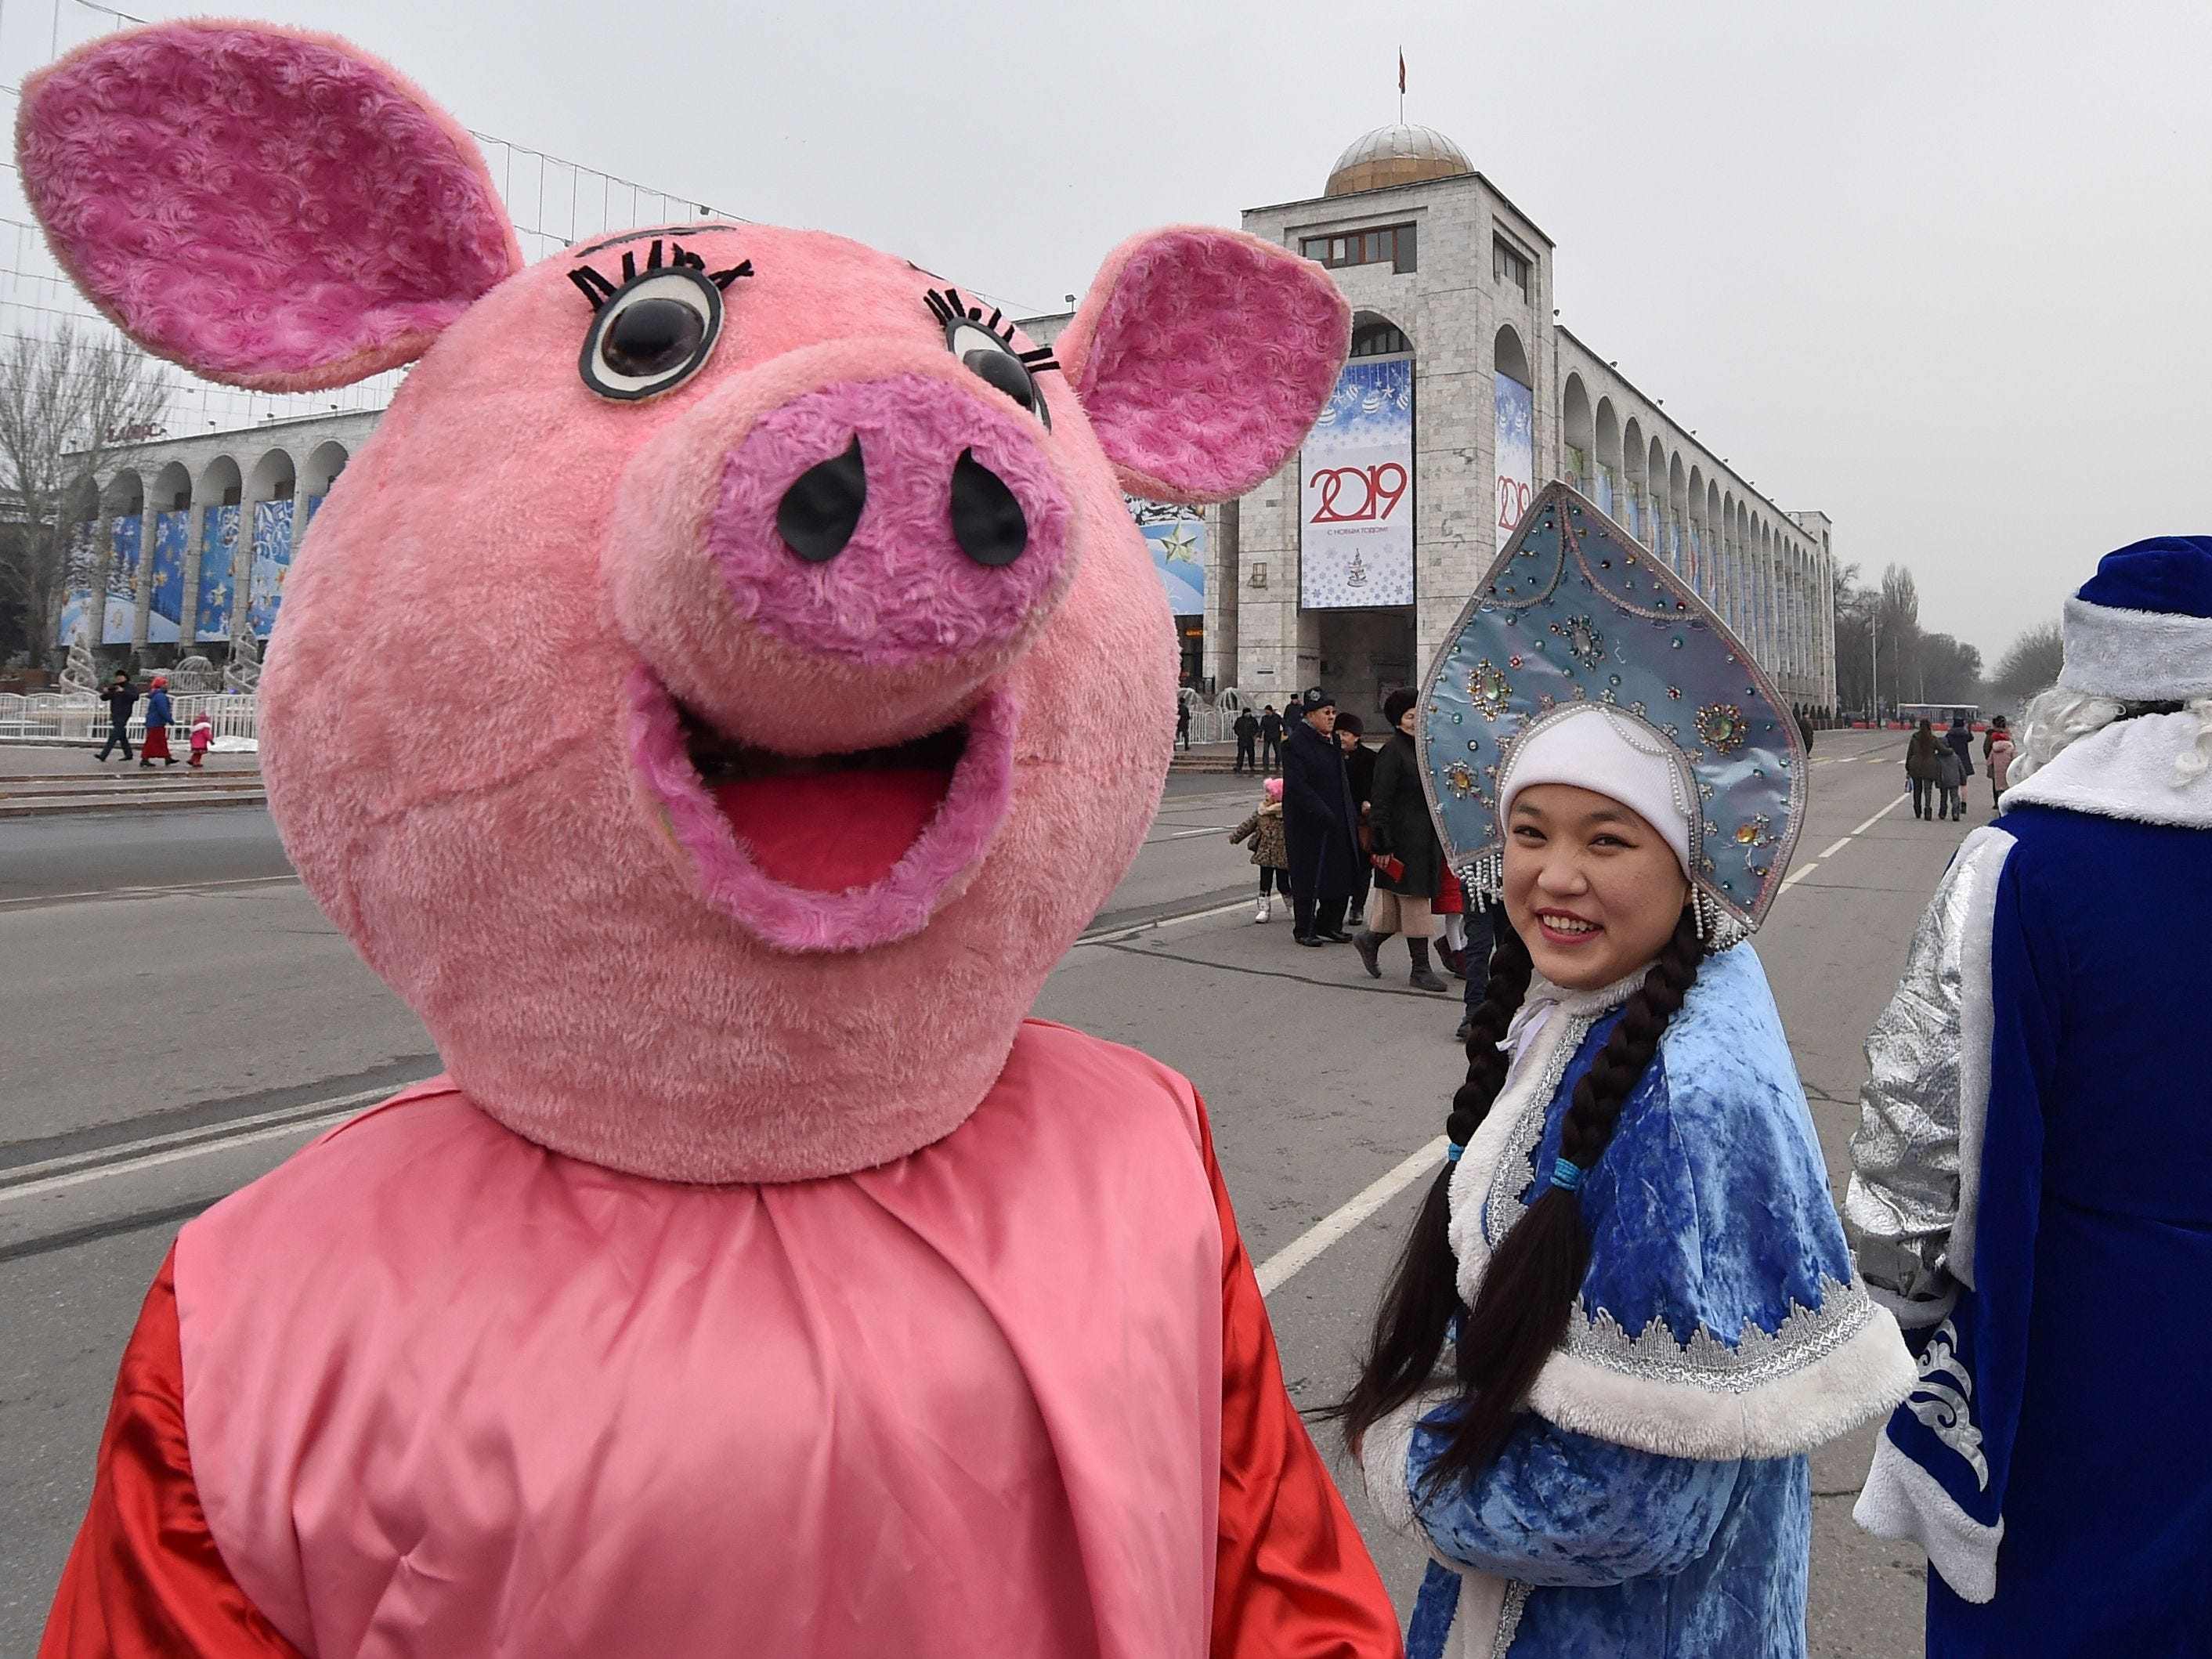 People attend the New Year's parade in Bishkek, northern Kyrgyzstan.